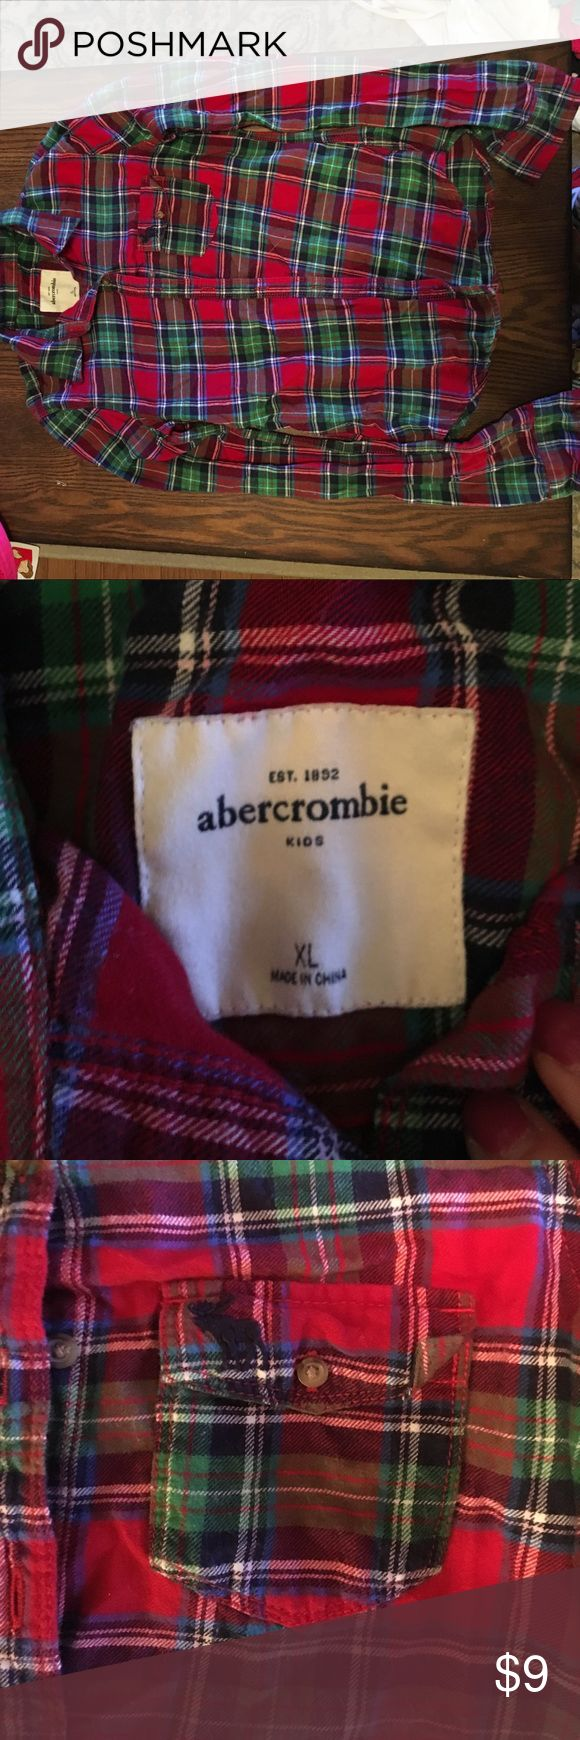 Abercrombie kids flannel This is a girls extra large flannel from abercrombie kids. It is in good condition and is perfect for fall. Please feel free to make an offer. abercrombie kids Shirts & Tops Button Down Shirts